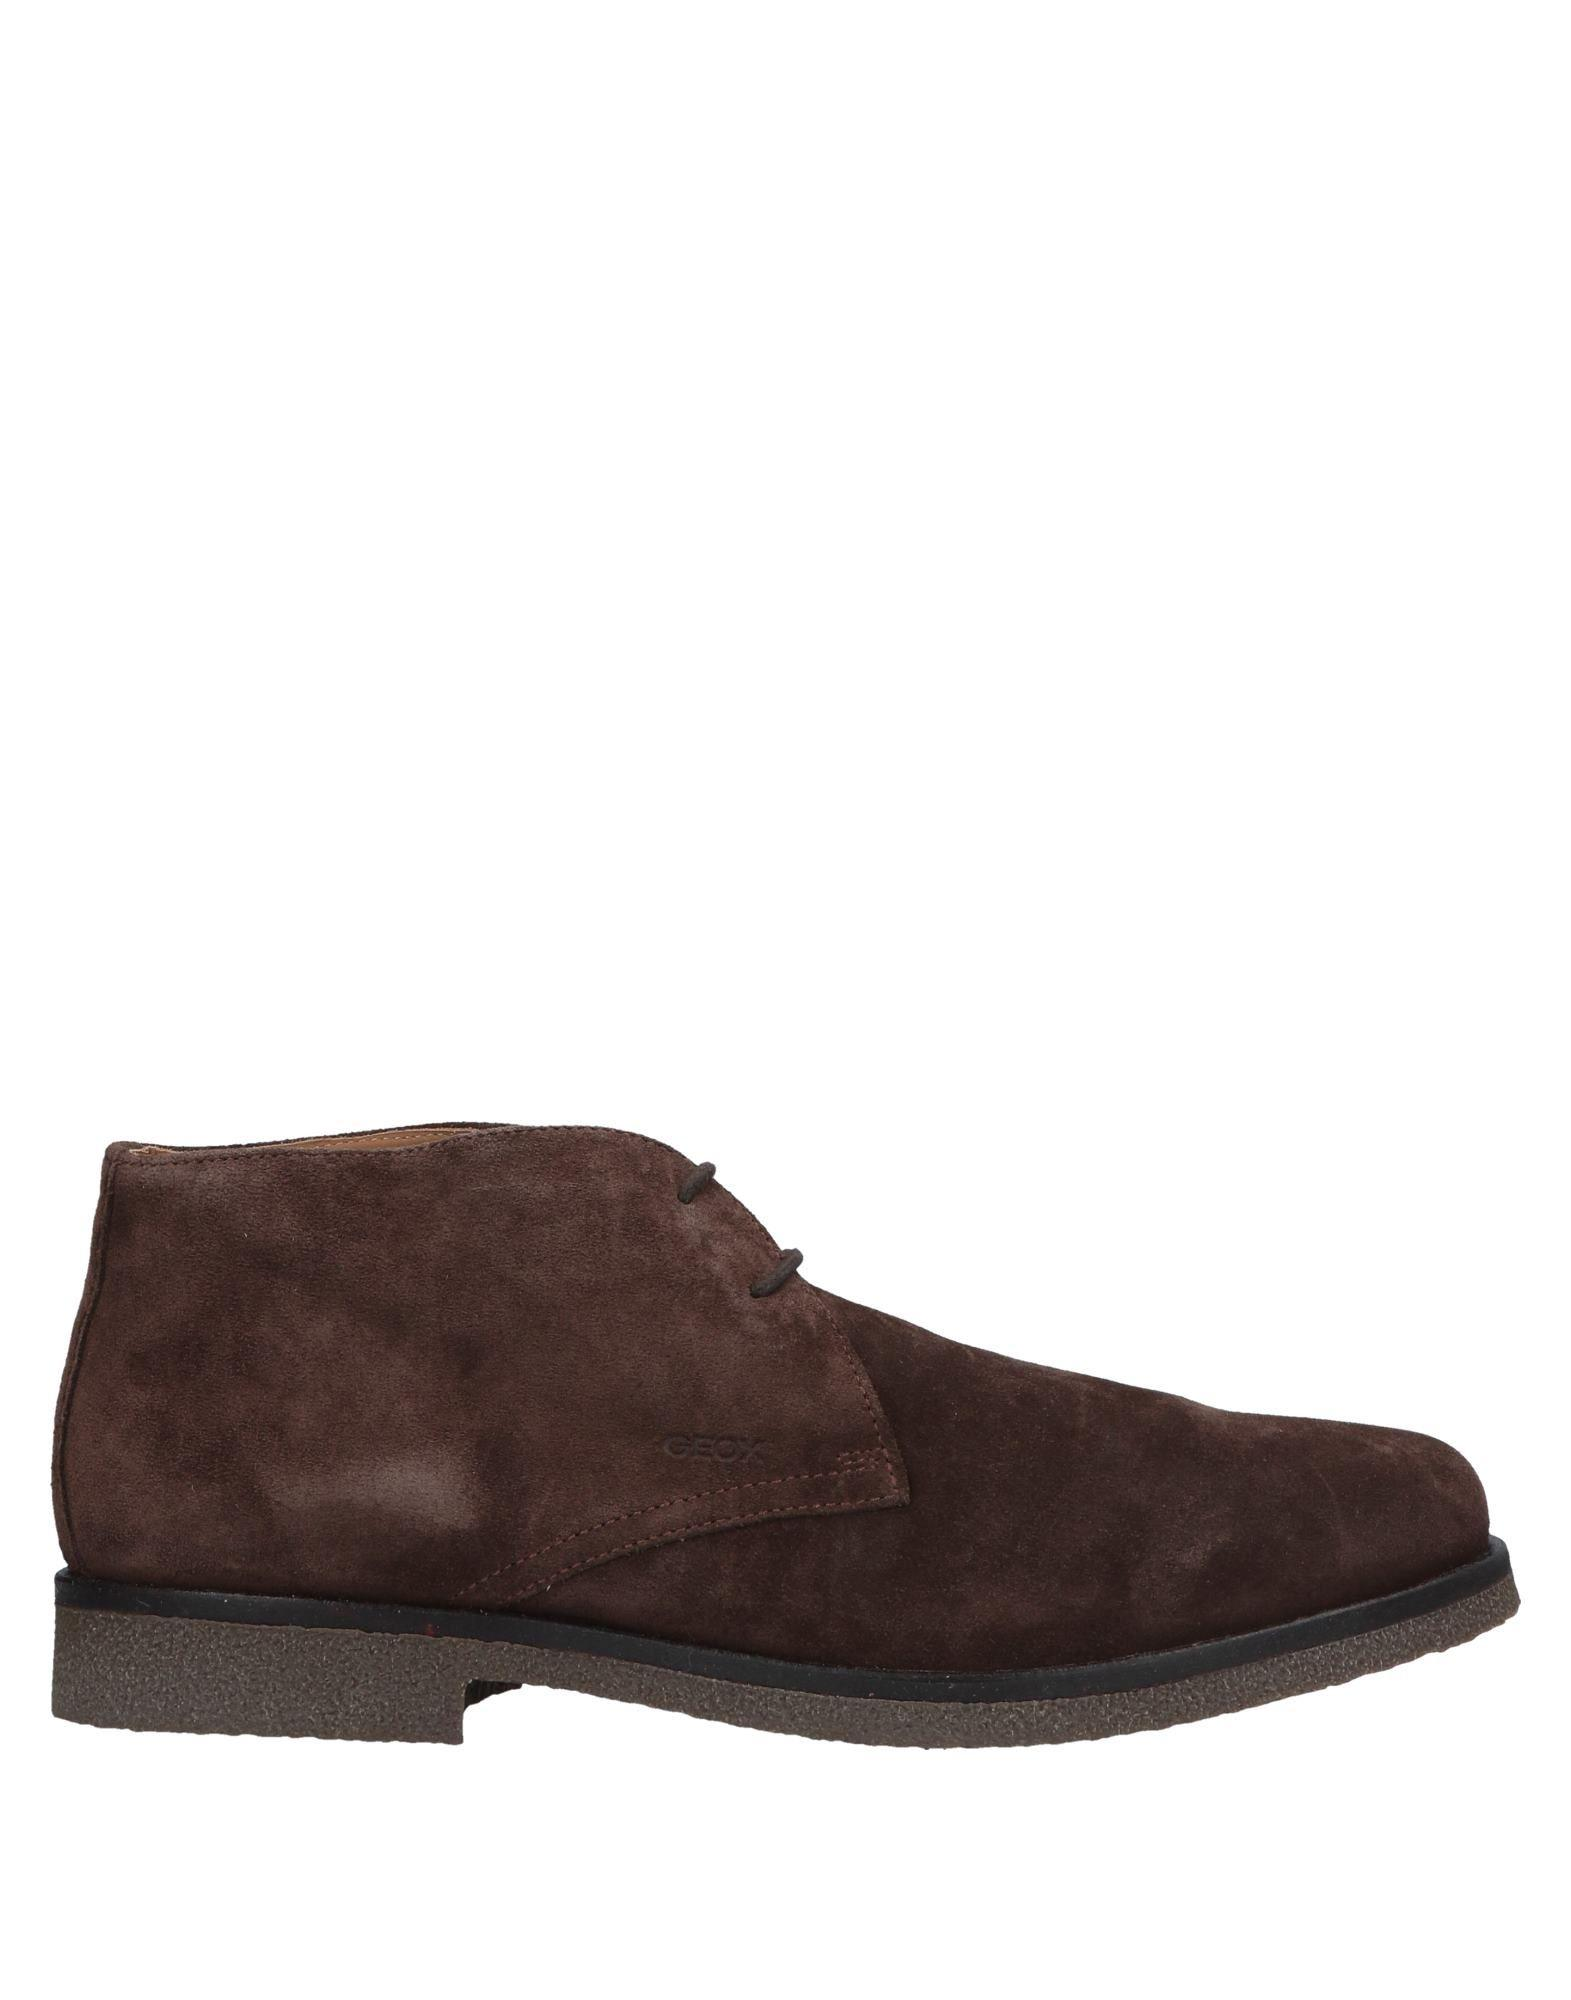 b1b972fcd83 Lyst - Geox Ankle Boots in Brown for Men